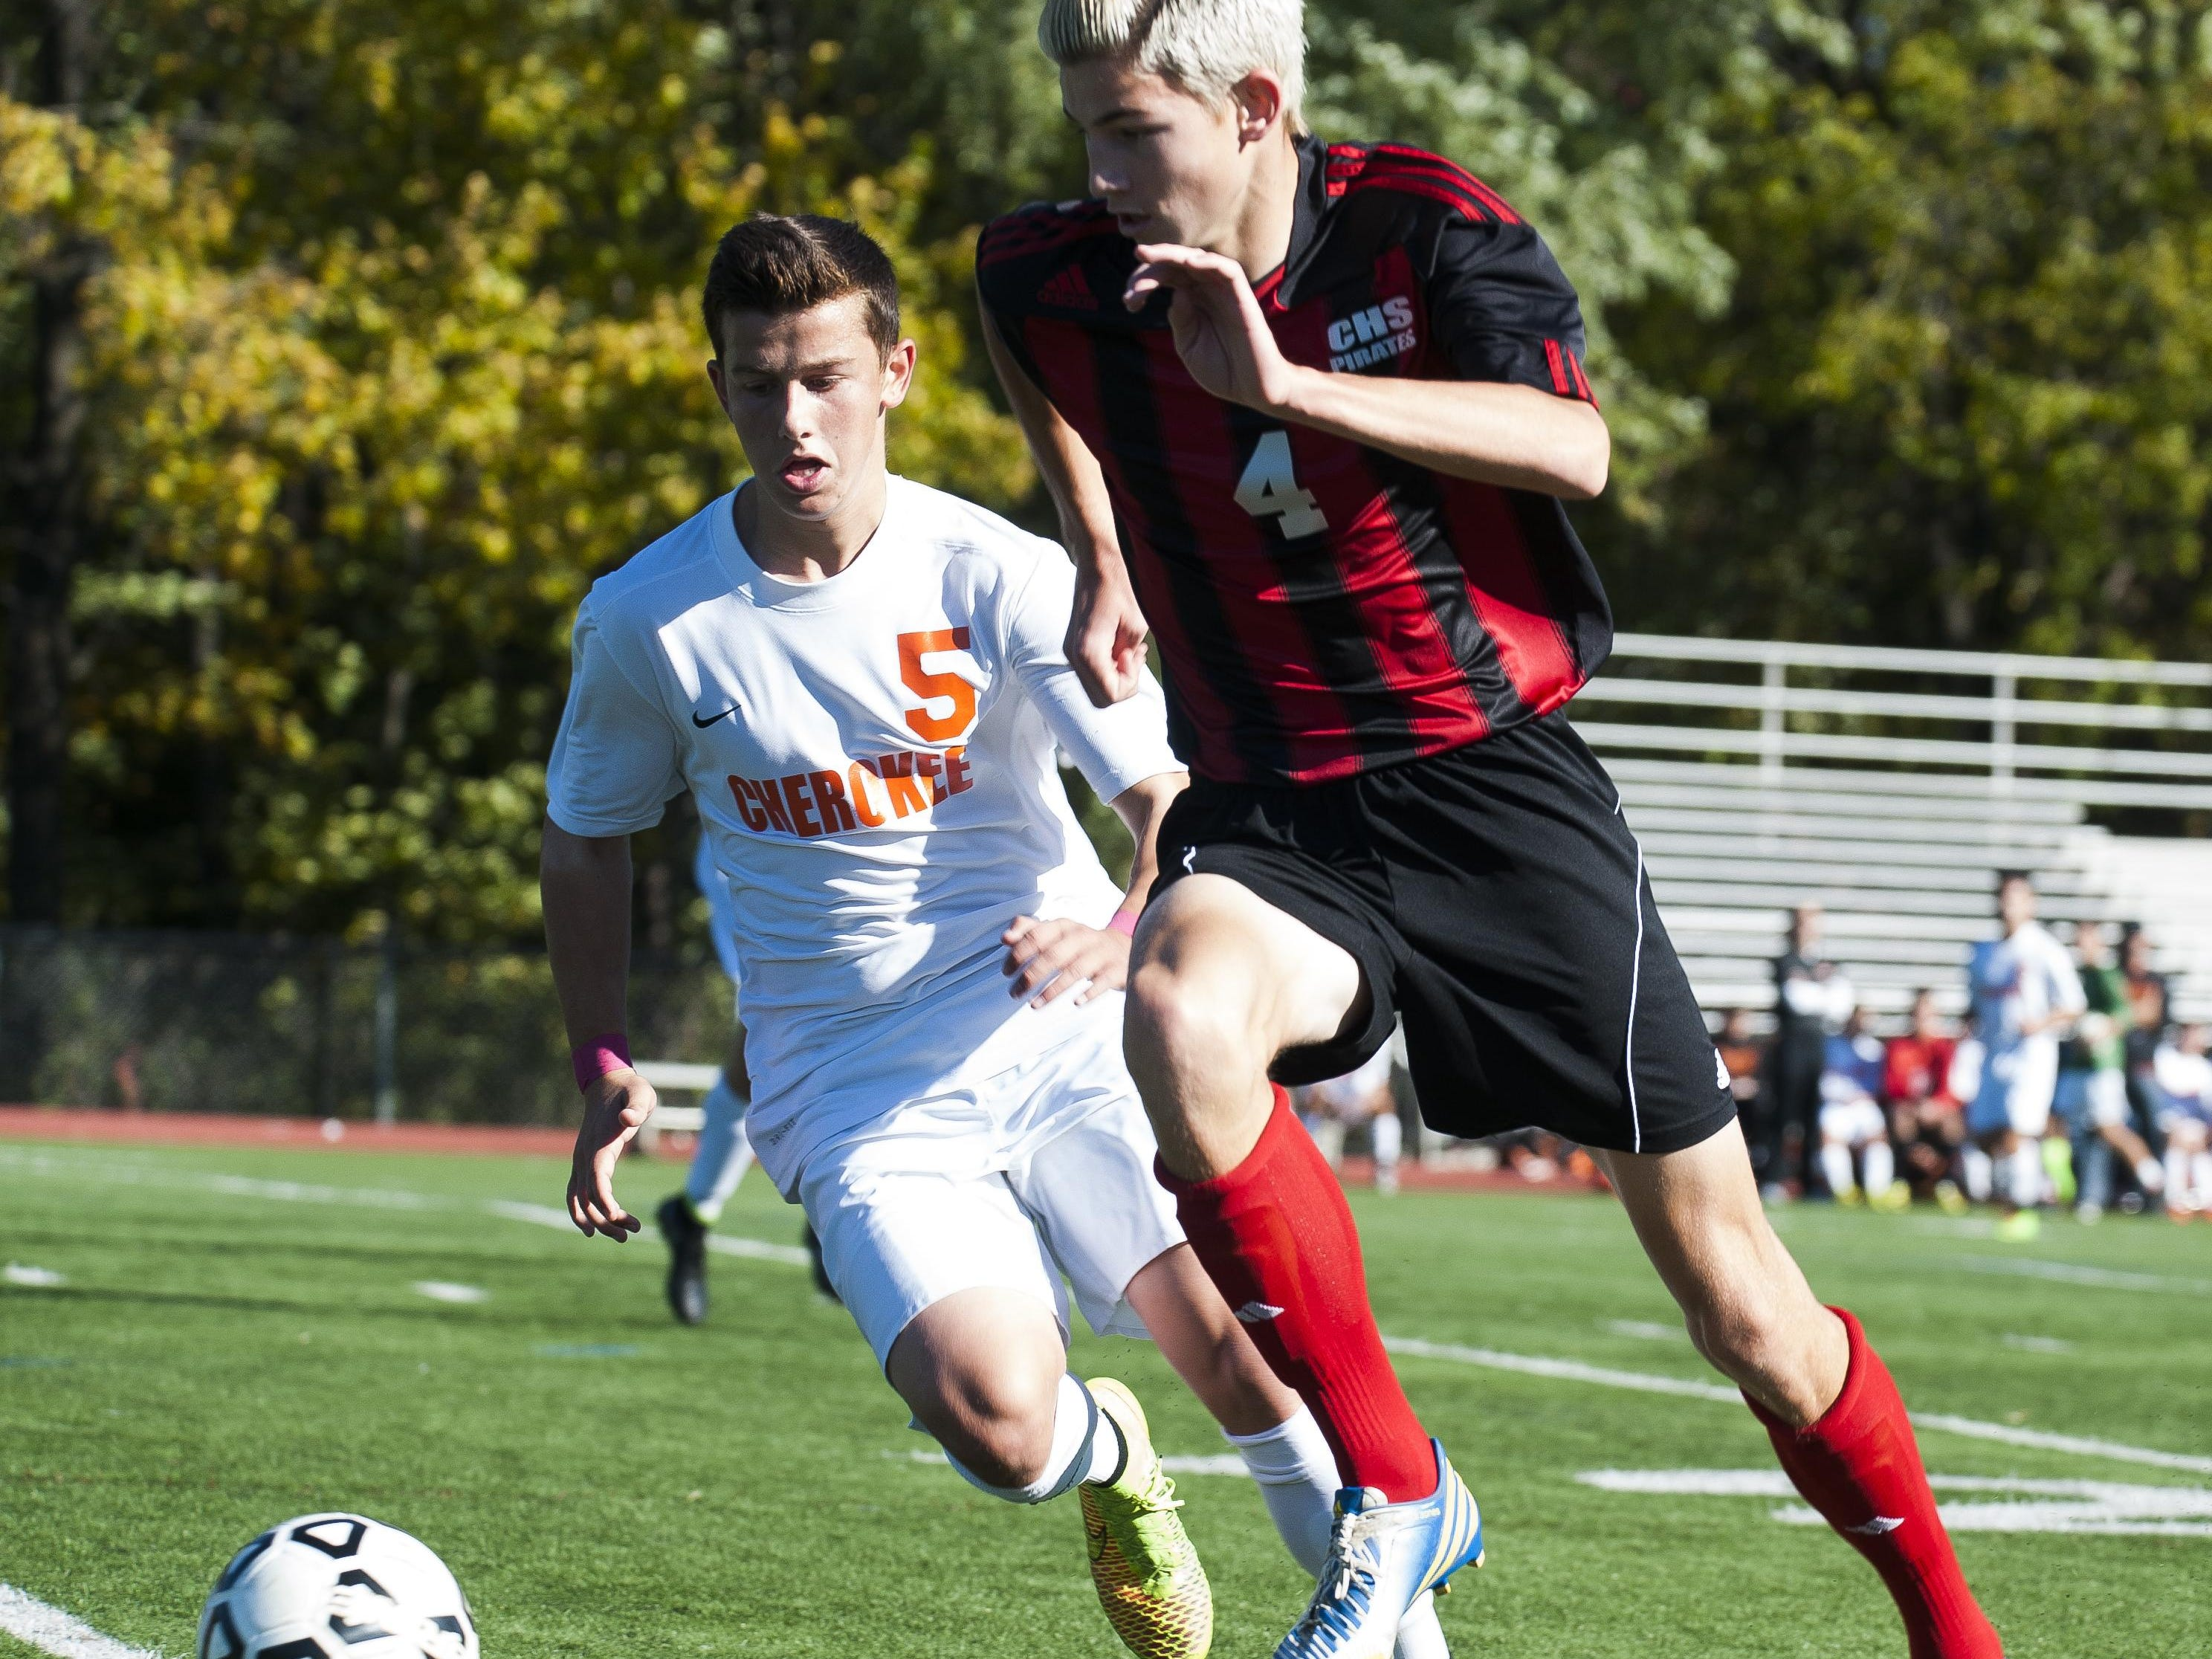 With Jake Treiber (left) of Cherokee and Cinnaminson's Pat McCarthy returning, both teams enter the season among South Jersey's premier teams.